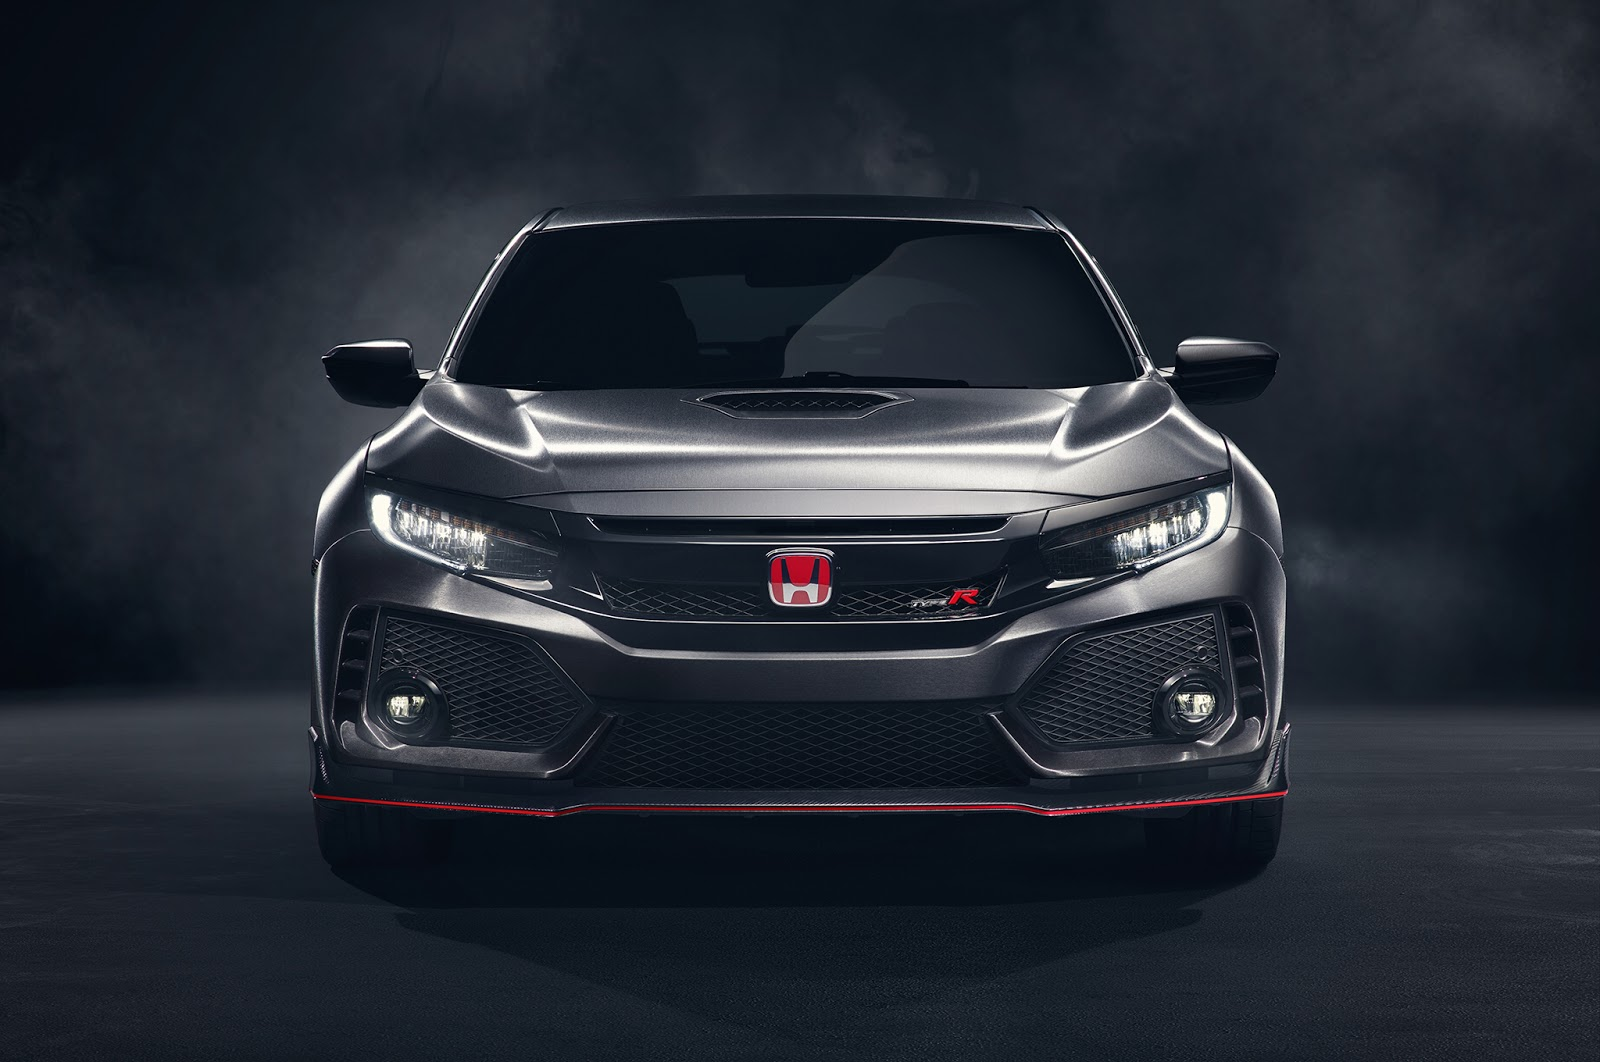 2017 honda civic type r prototype bows in at paris motor. Black Bedroom Furniture Sets. Home Design Ideas